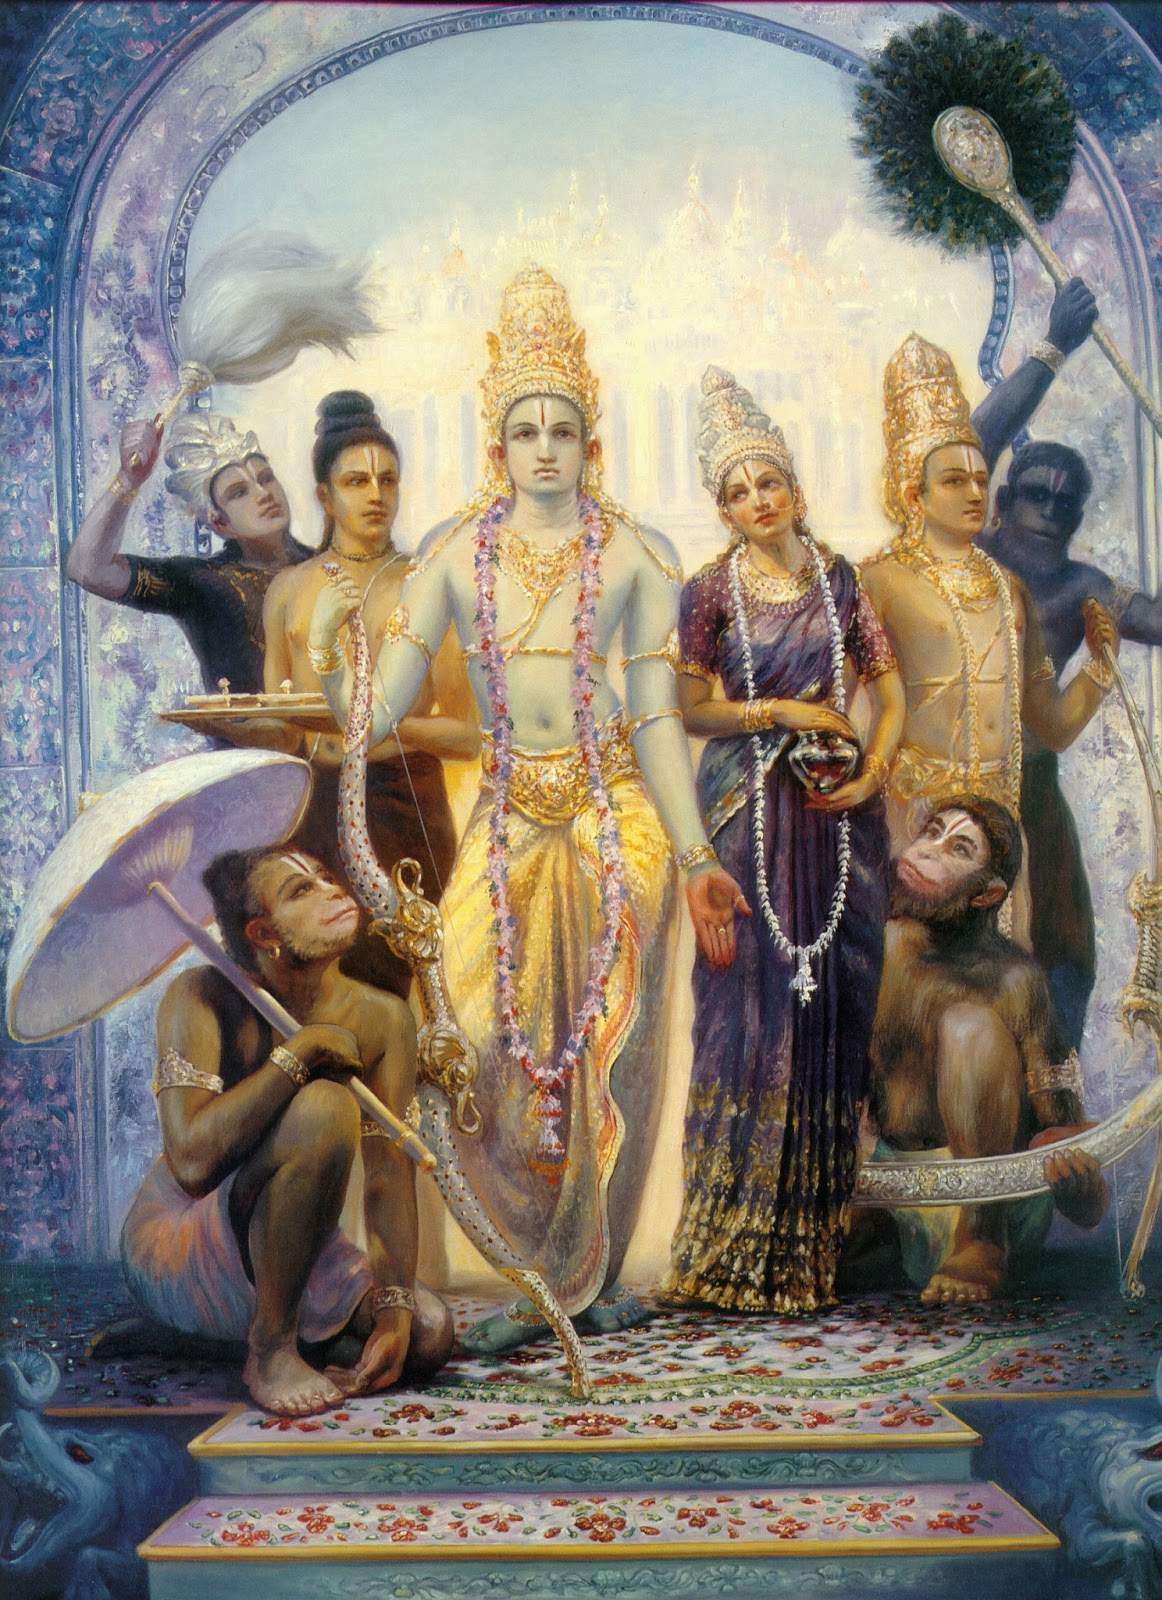 sita in the ramayana Sita also known as siya, maithali, janaki and bhoomija, was the leading character portrayed in the hindu epic ramayanashe is addressed as devi sita, foster daughter of king janak and queen sunaina.